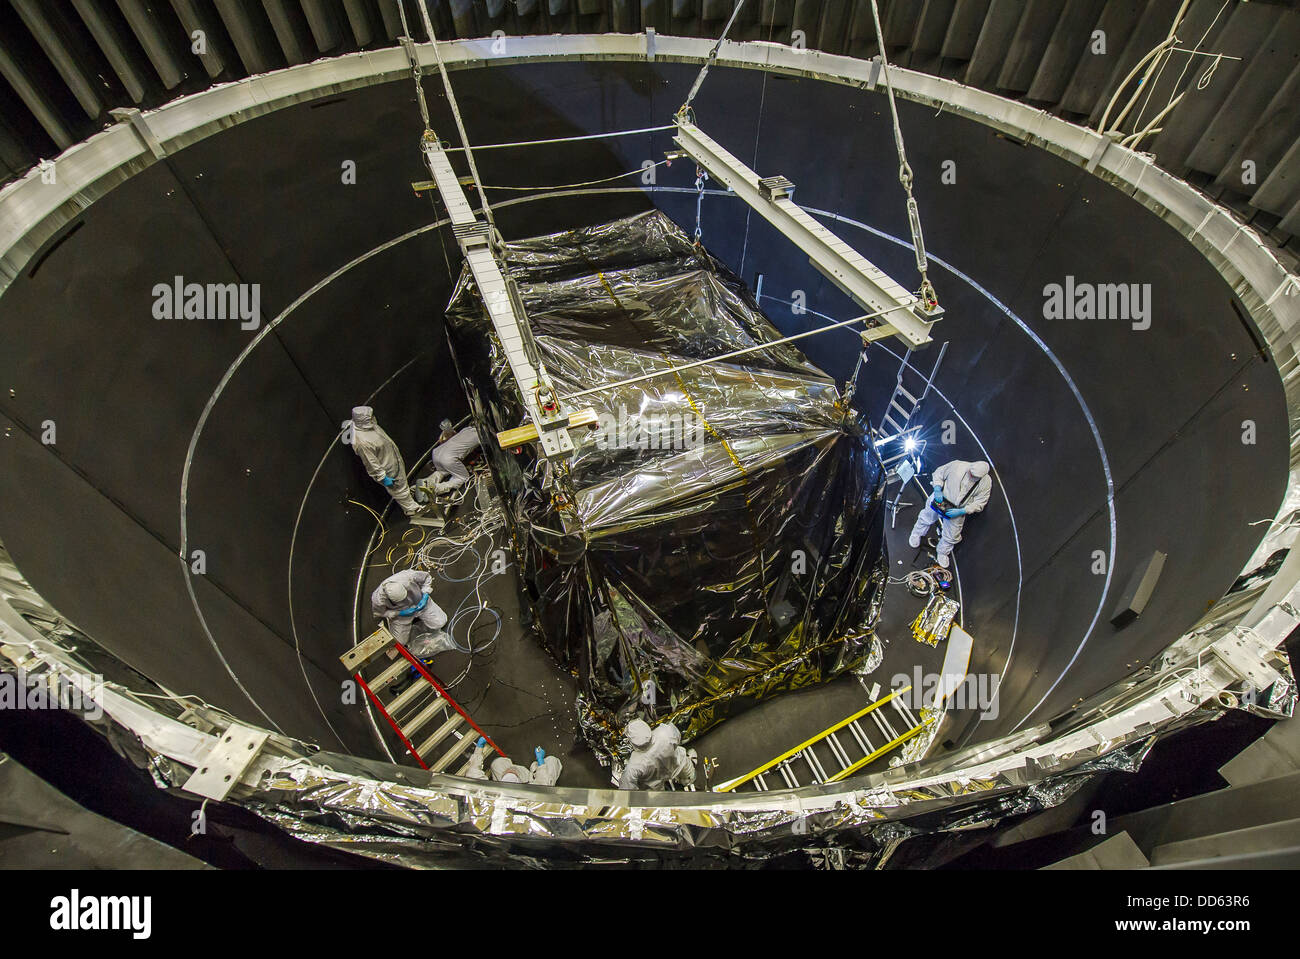 ISIM Lowered into Thermal Vacuum Chamber - Stock Image